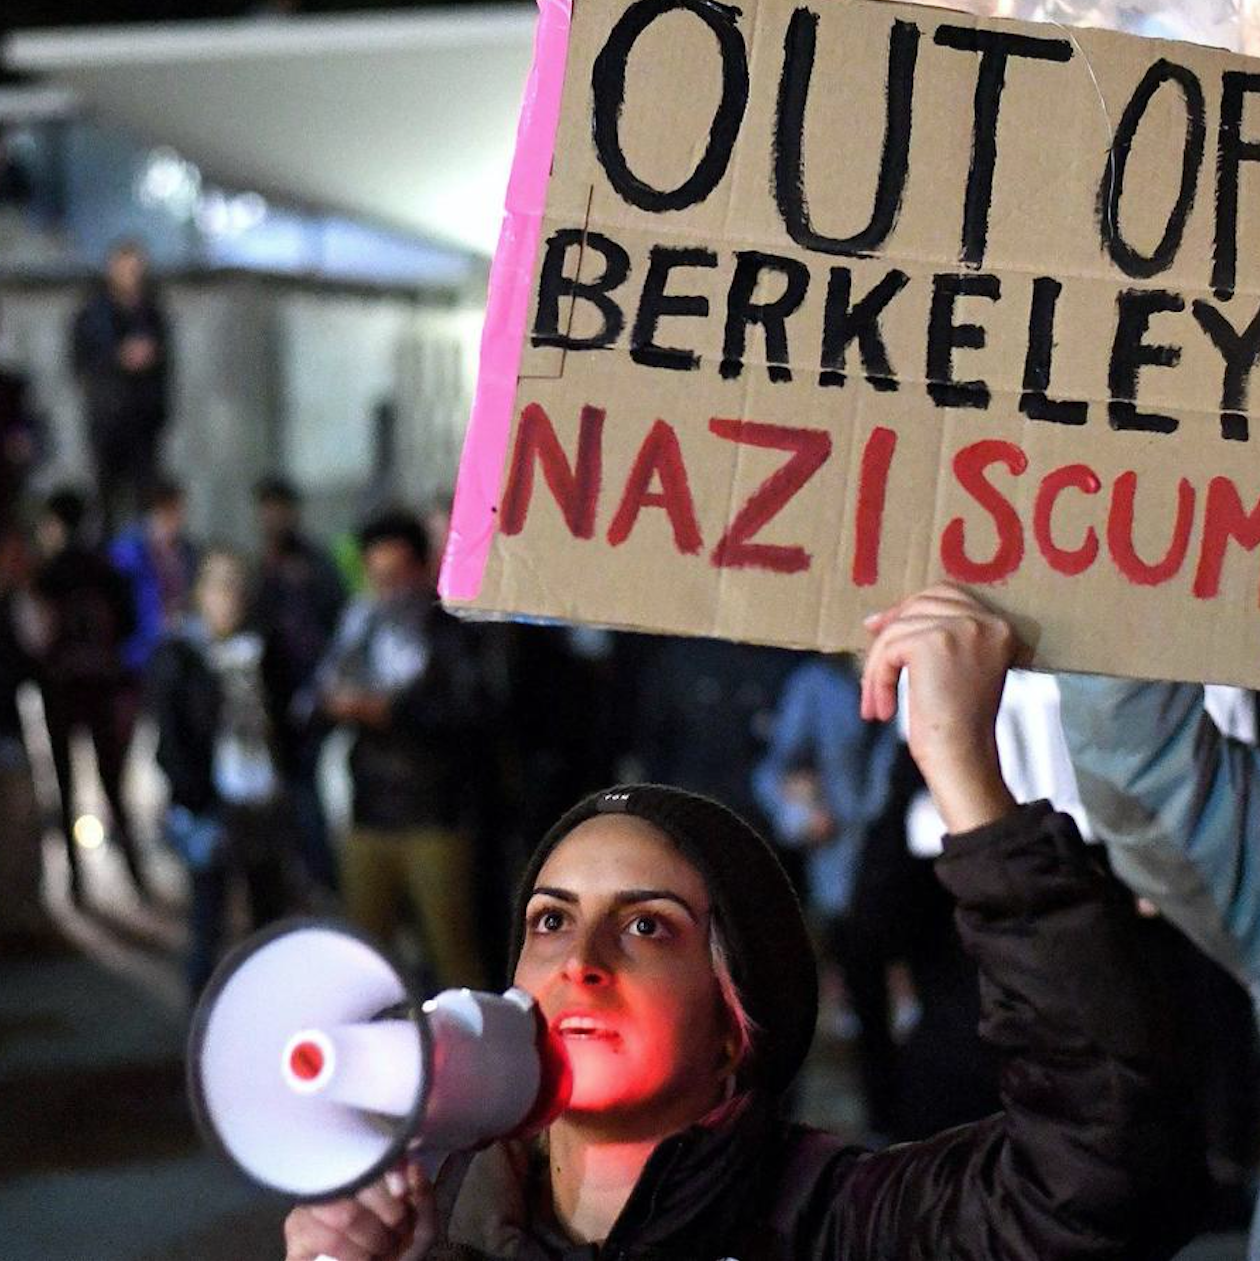 The Nazi Binary, Berkeley, and the